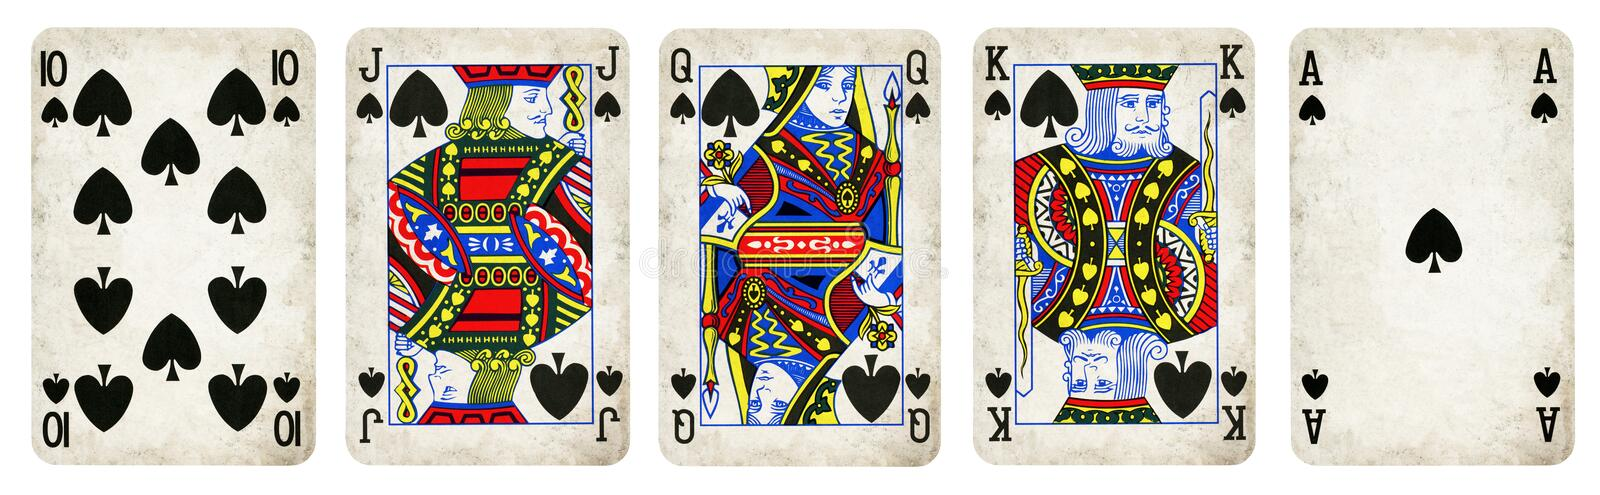 Spades Suit Vintage Playing Cards stock image